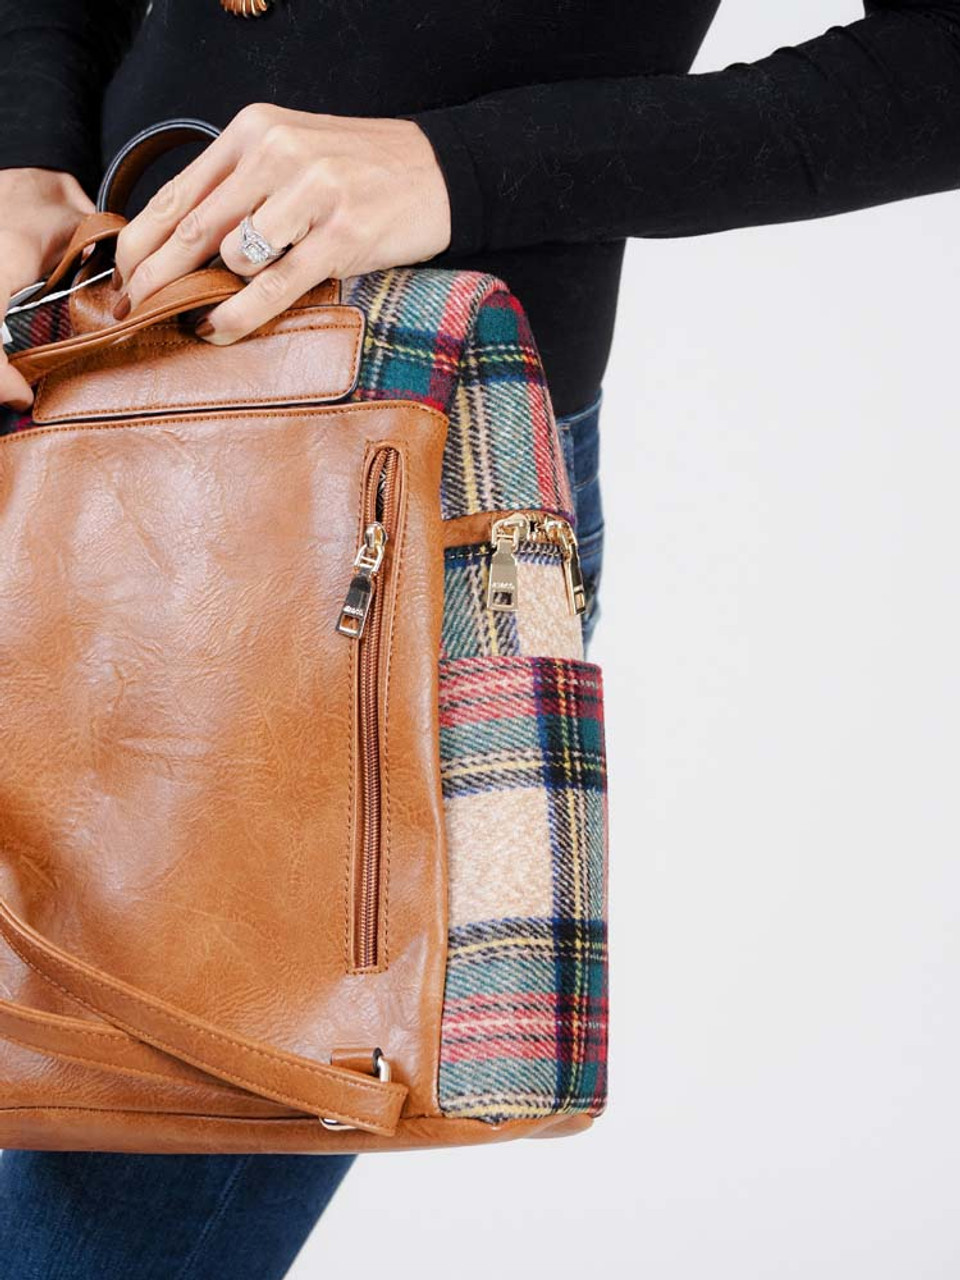 Multiplaid backpack with vegan leather